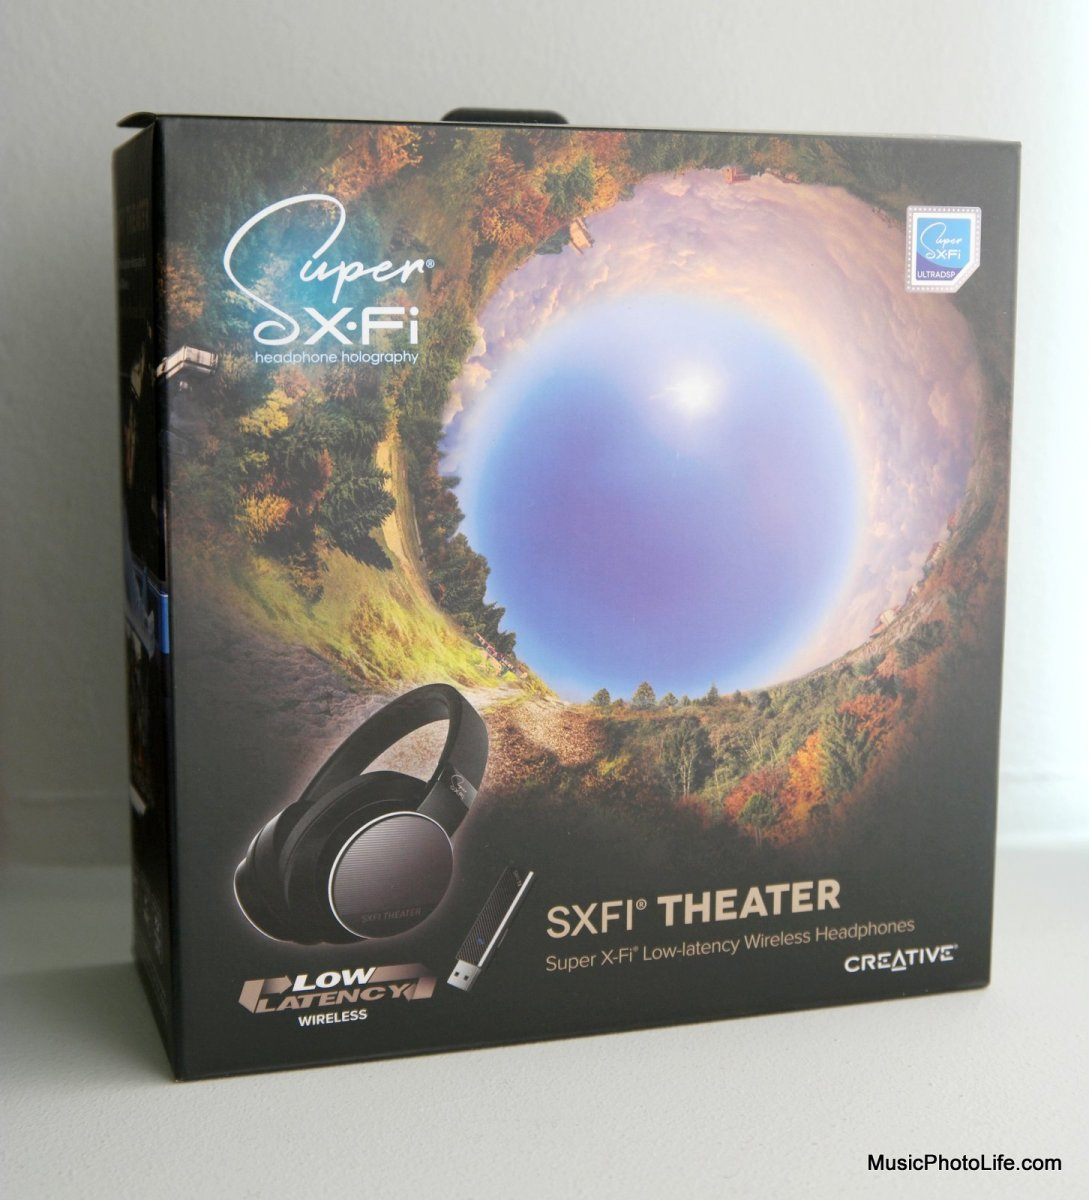 Creative SXFI Theater headphones box